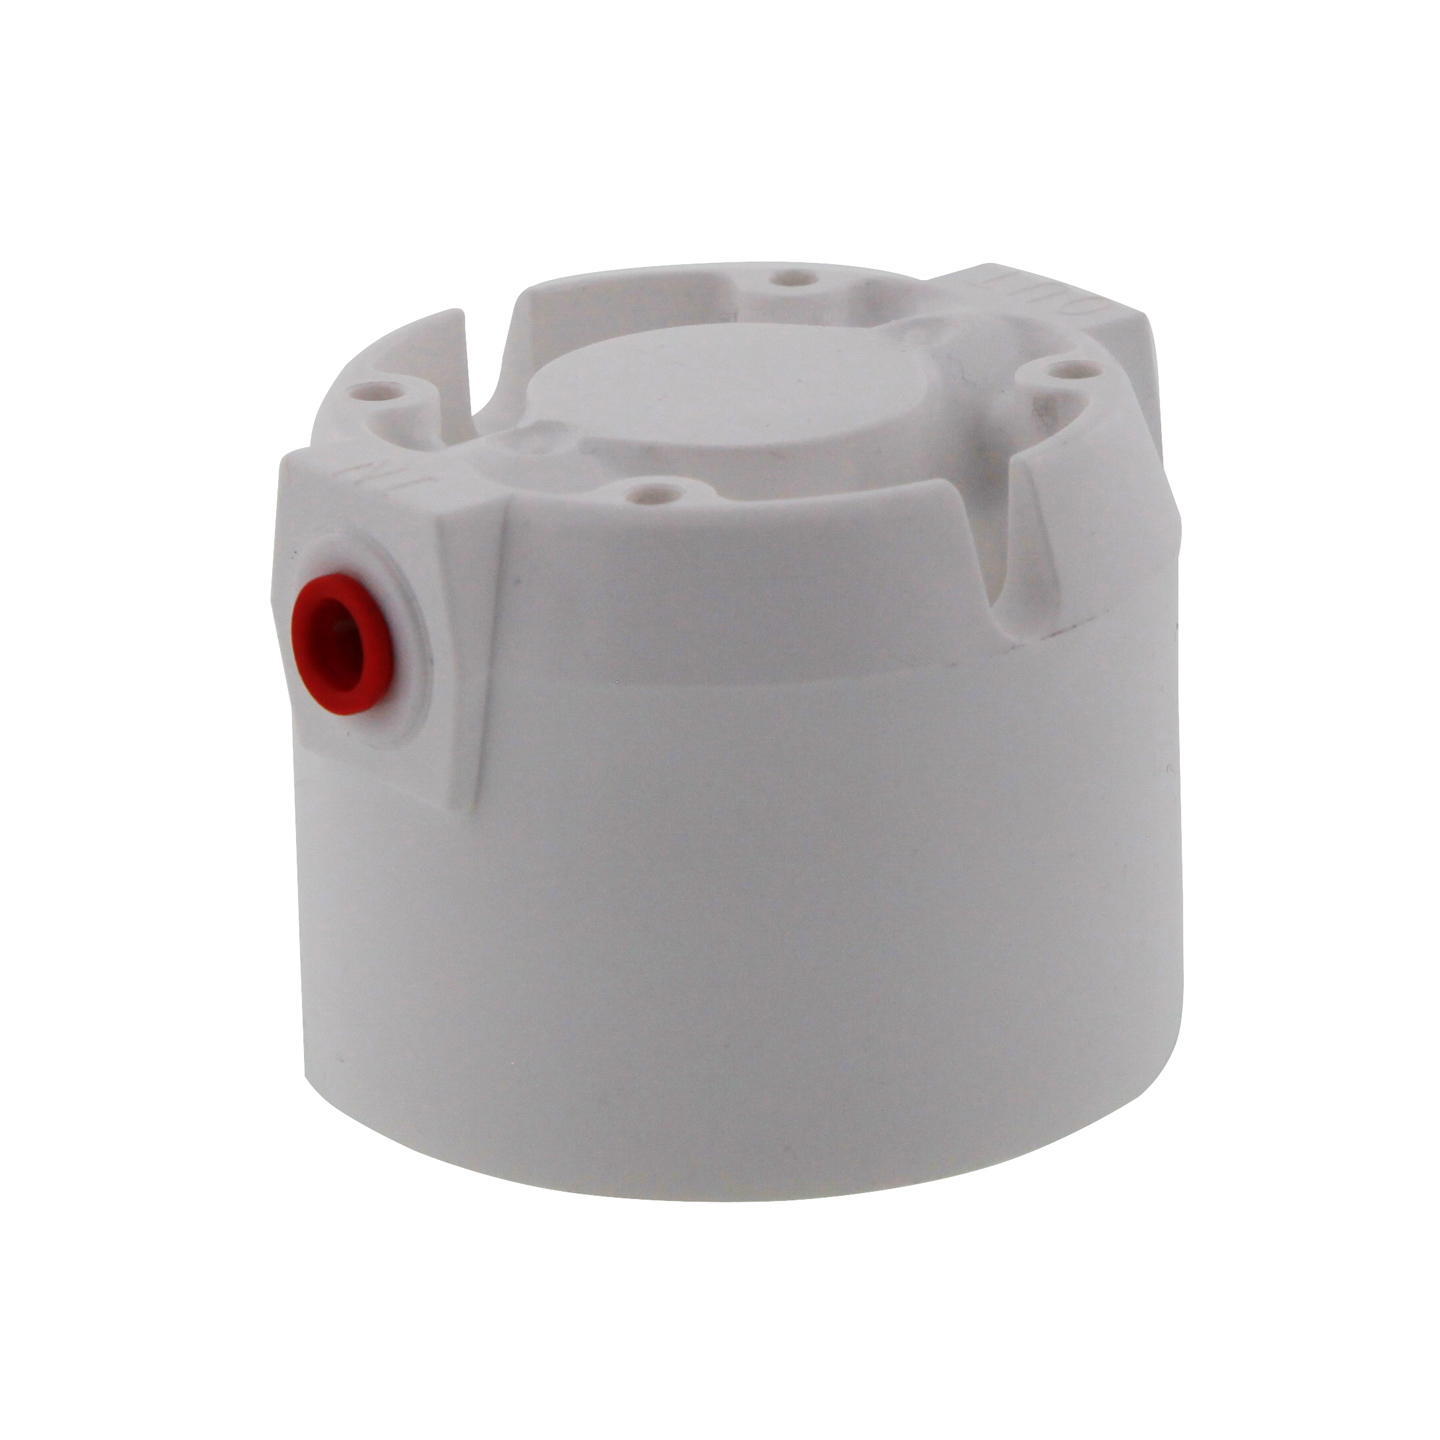 QNVH-JJ Omnipure Quick Connect Water Filter Head